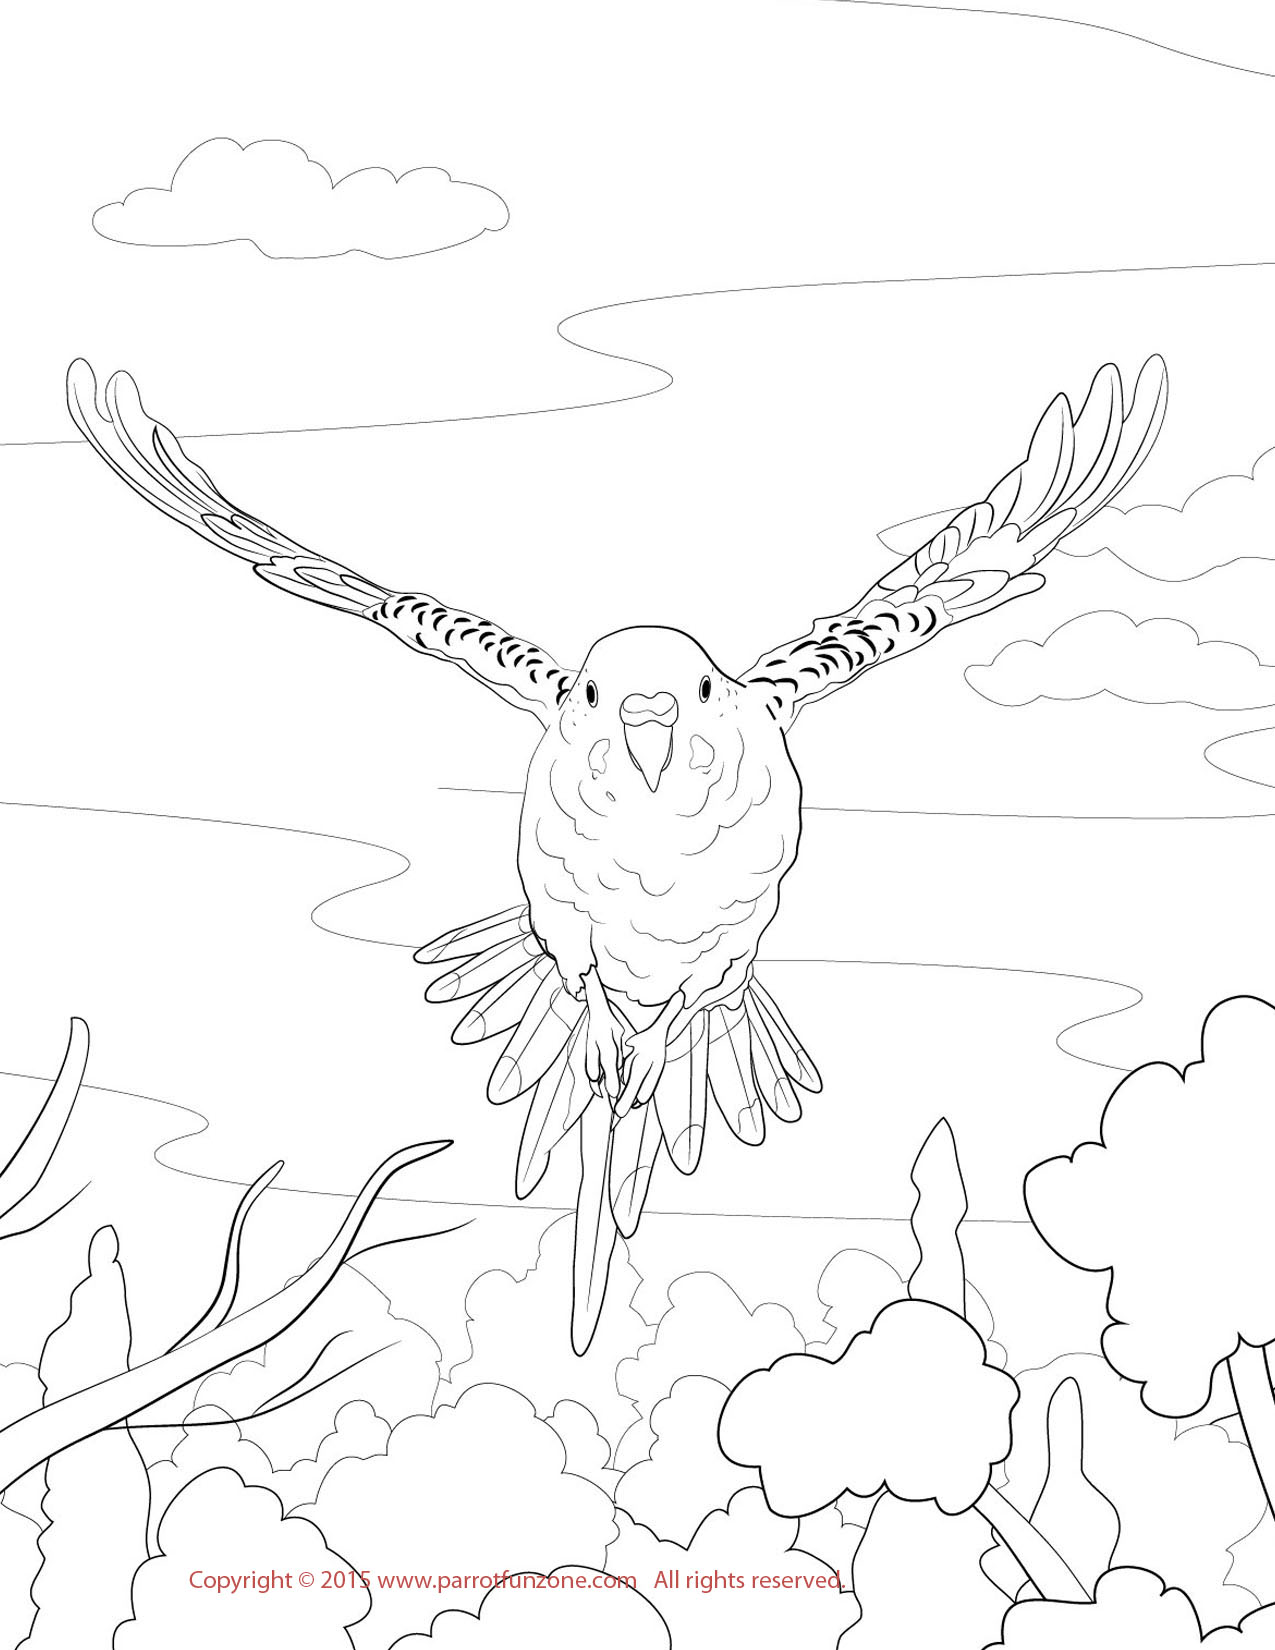 galapagos island coloring pages - photo #31